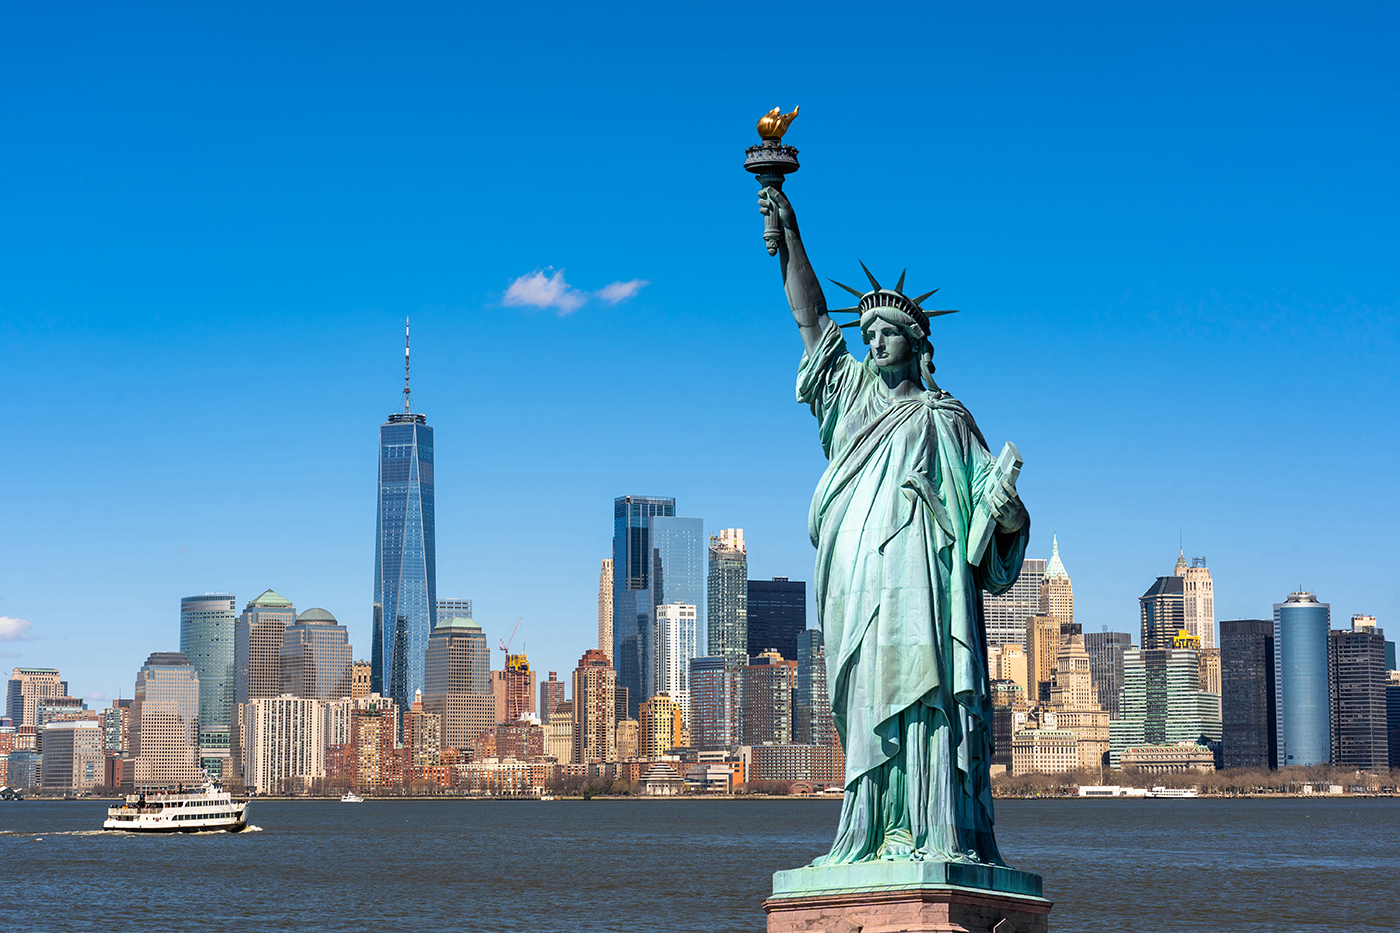 Travel To New York-JFK on Delta Air Lines